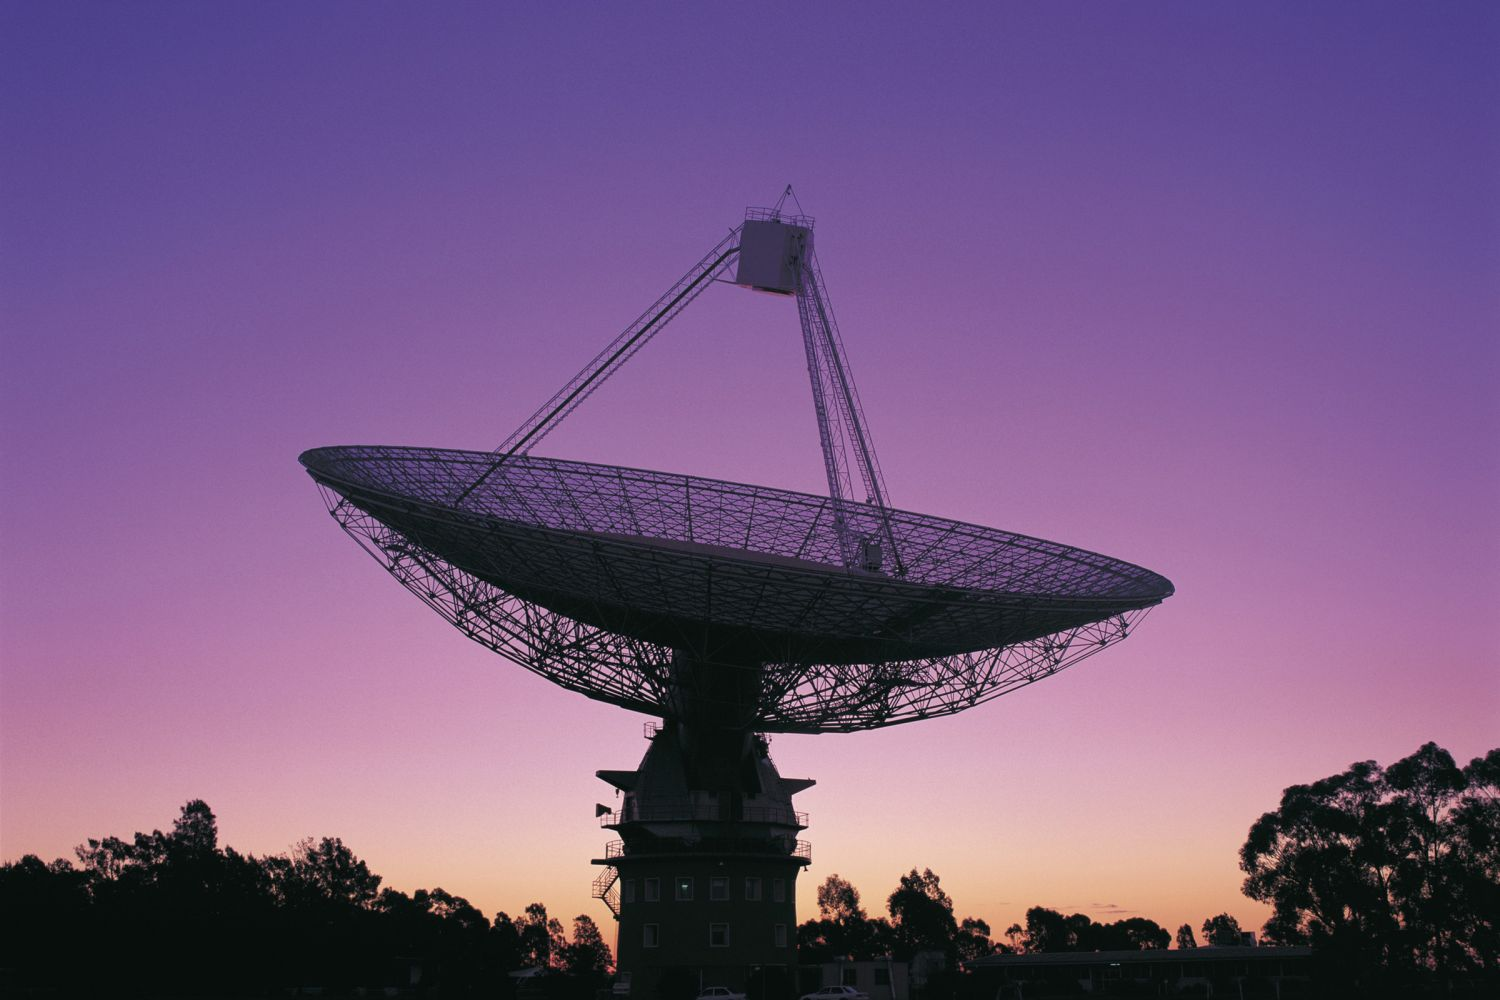 The CSIRO Parkes Observatory radio telescope pointing skyward, Parkes, Australia